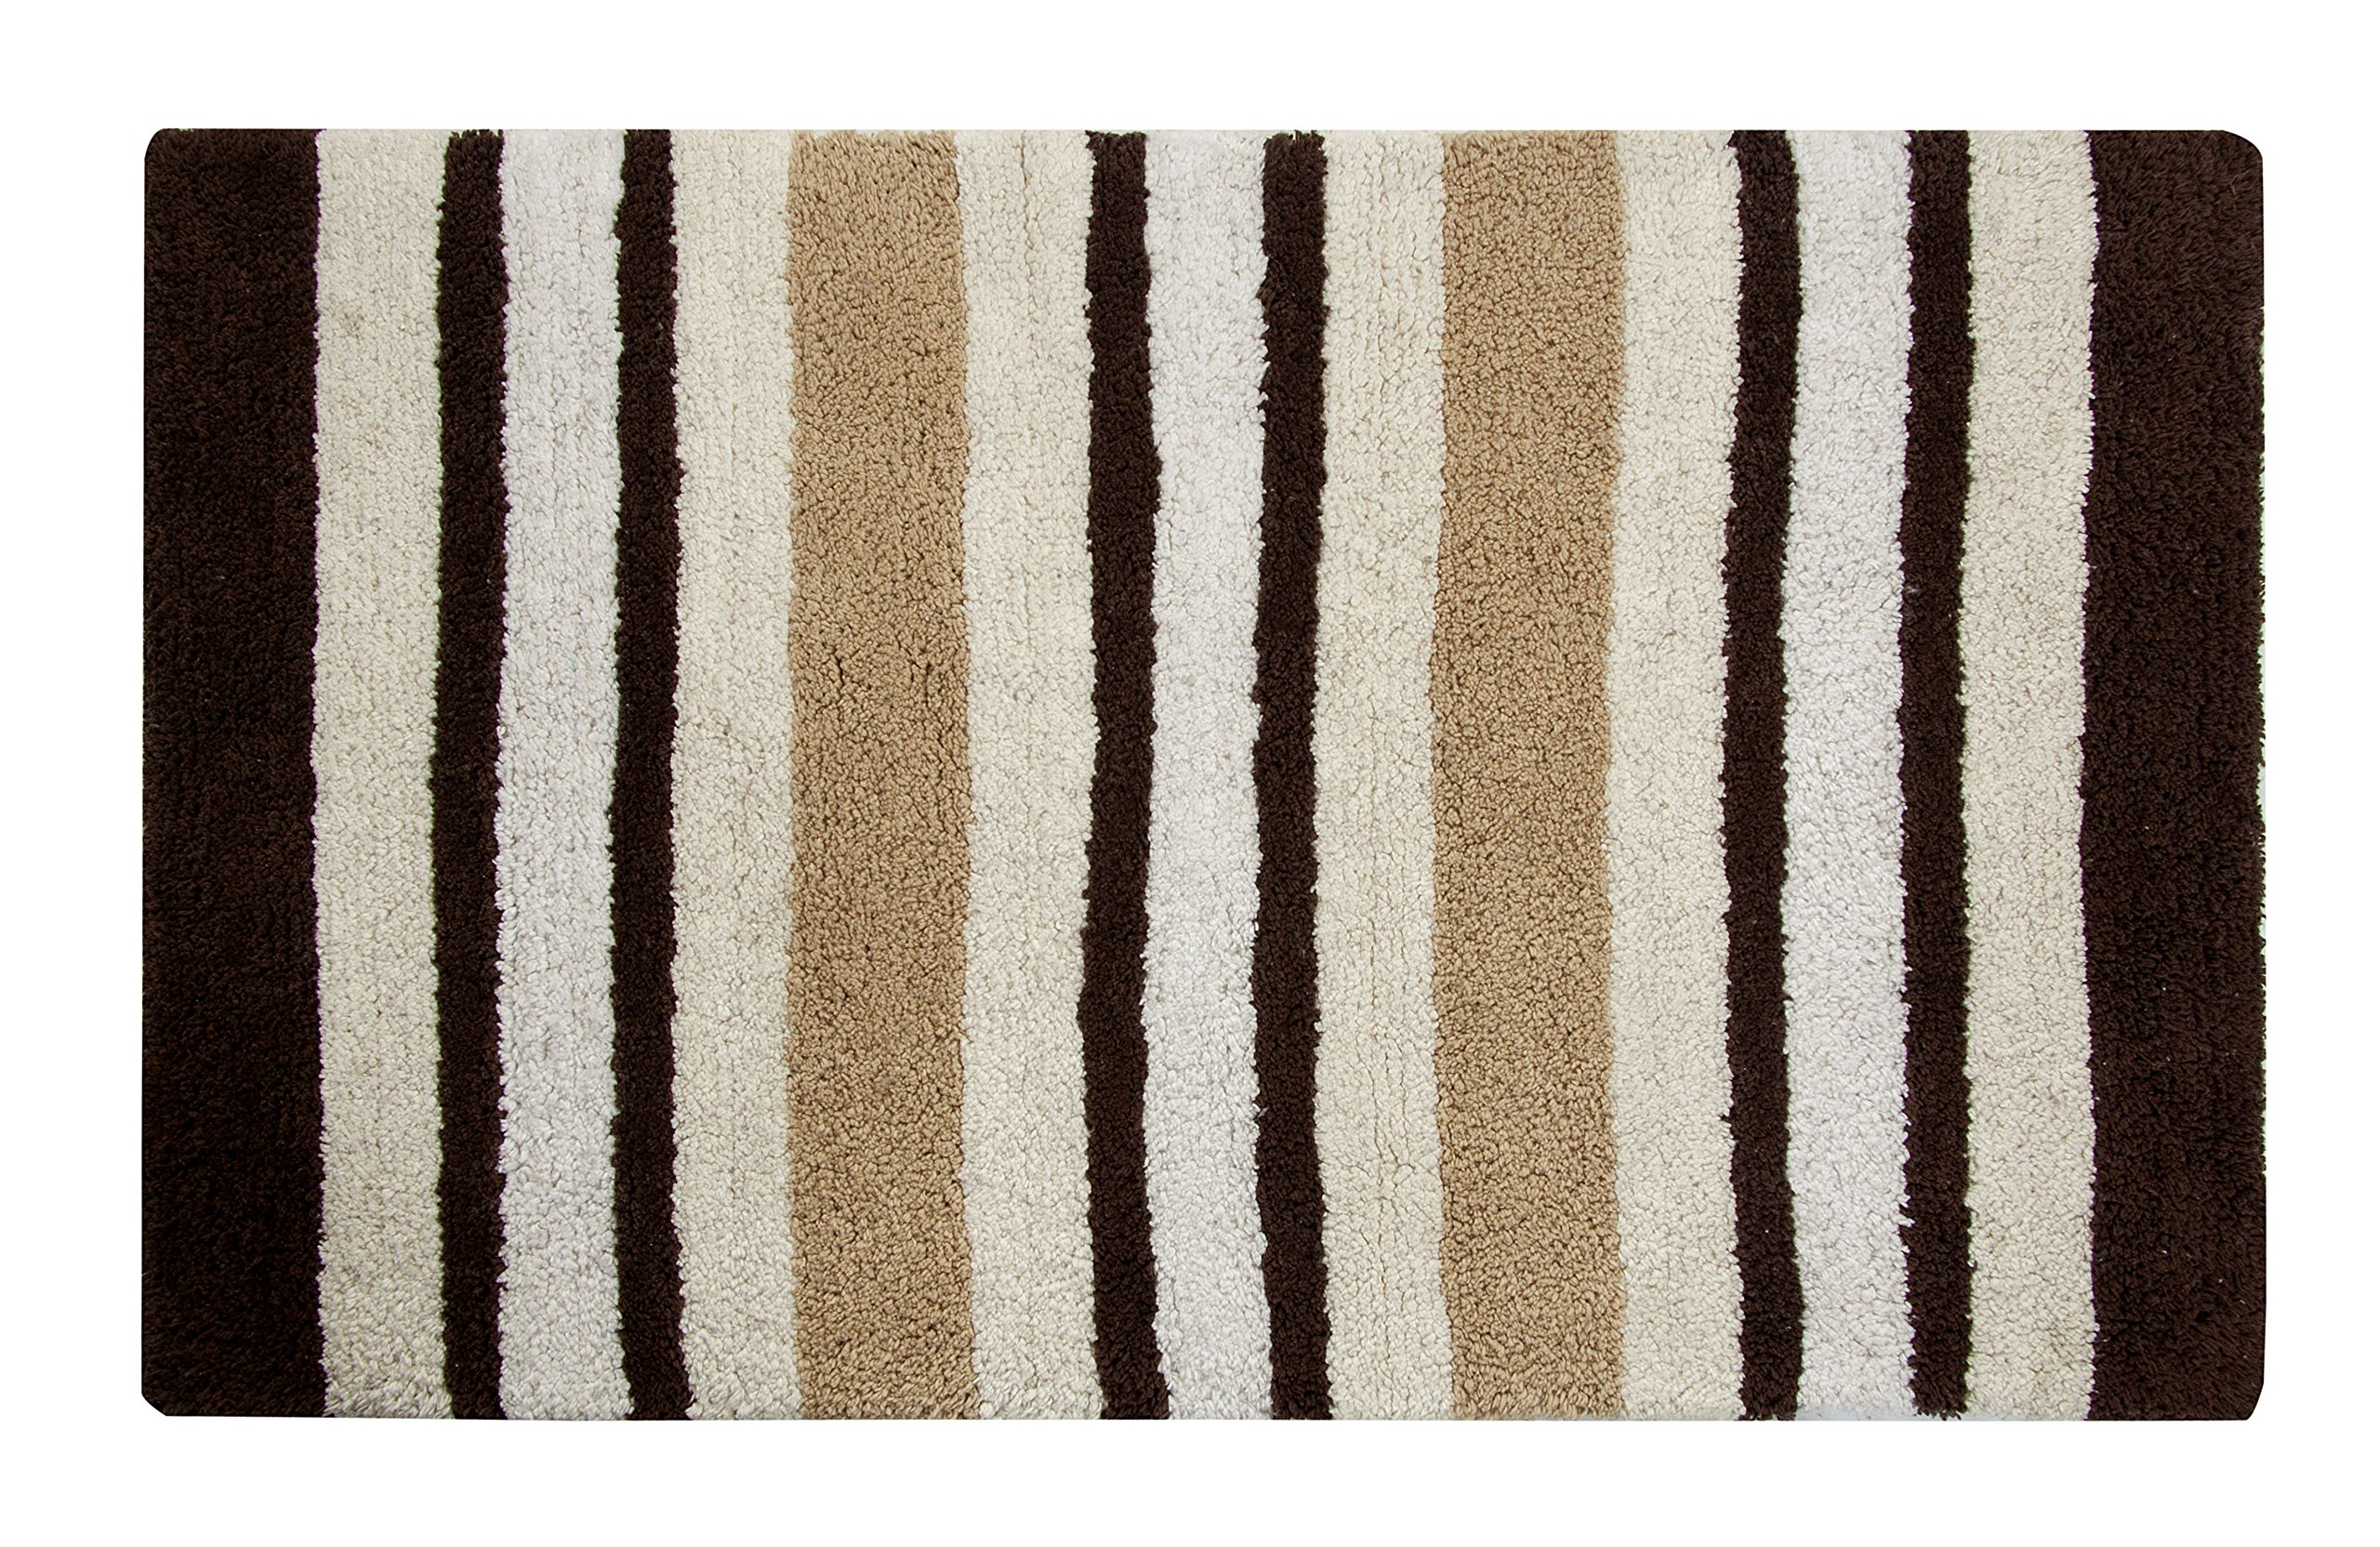 Saffron Fabs Woven Stripes Pattern Luxury Bath Rug, Ivory Multi - 100% super soft cotton and absorbent Machine washable Tumble dry for easy care - bathroom-linens, bathroom, bath-mats - 915BOIwI3VL -